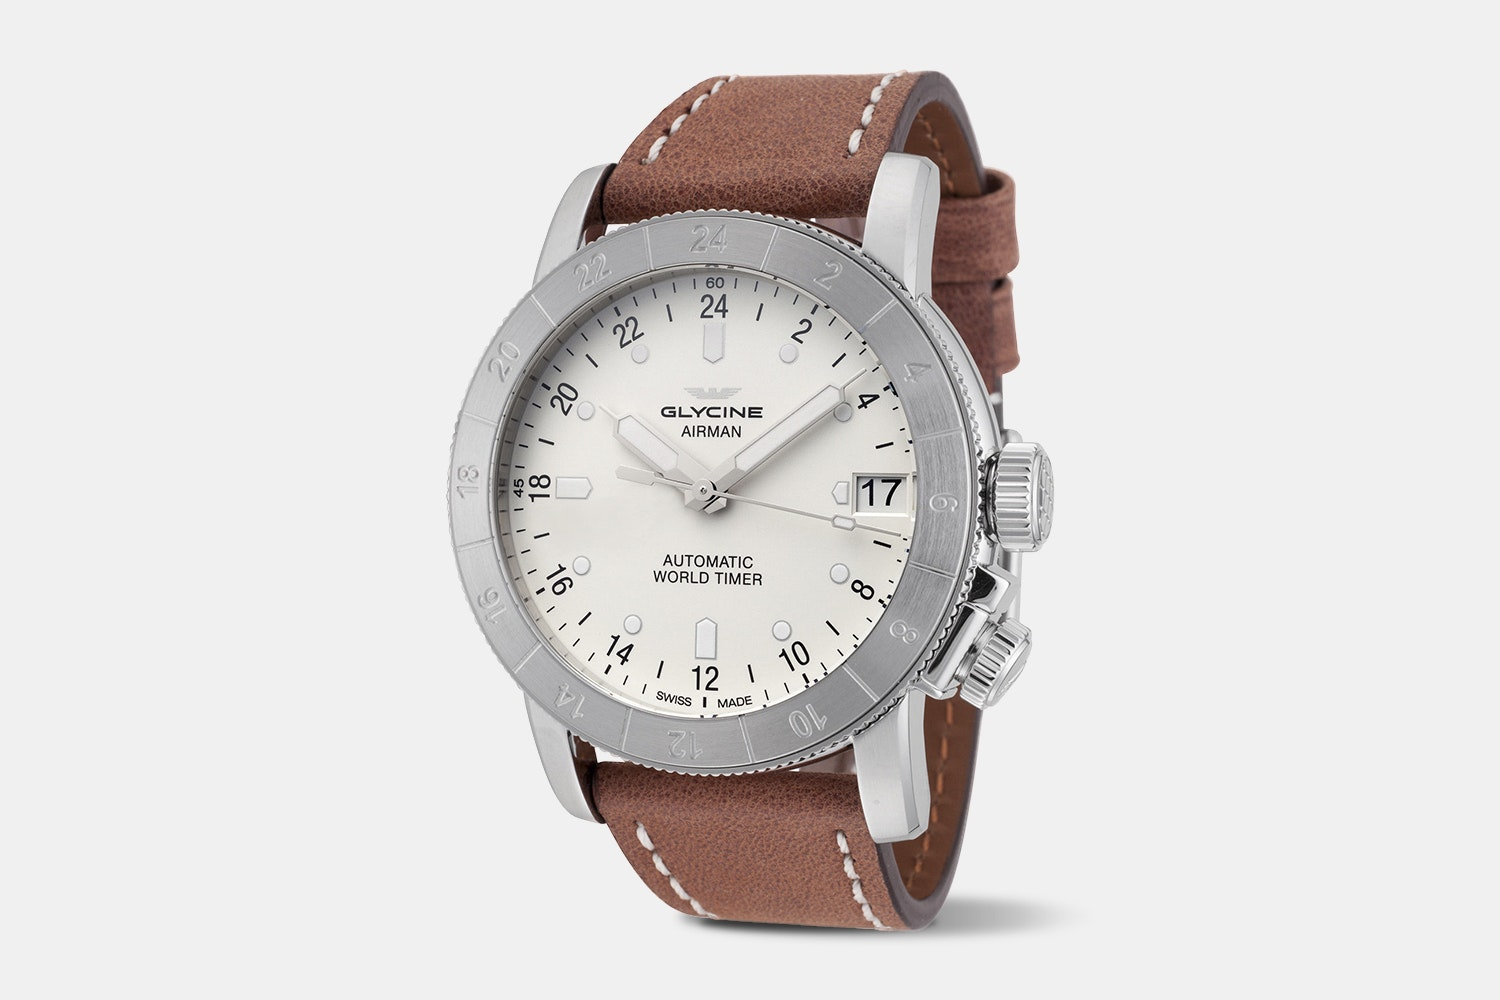 Airman 46 - GL0136 | 46 mm, White Dial, Brown Leather Strap